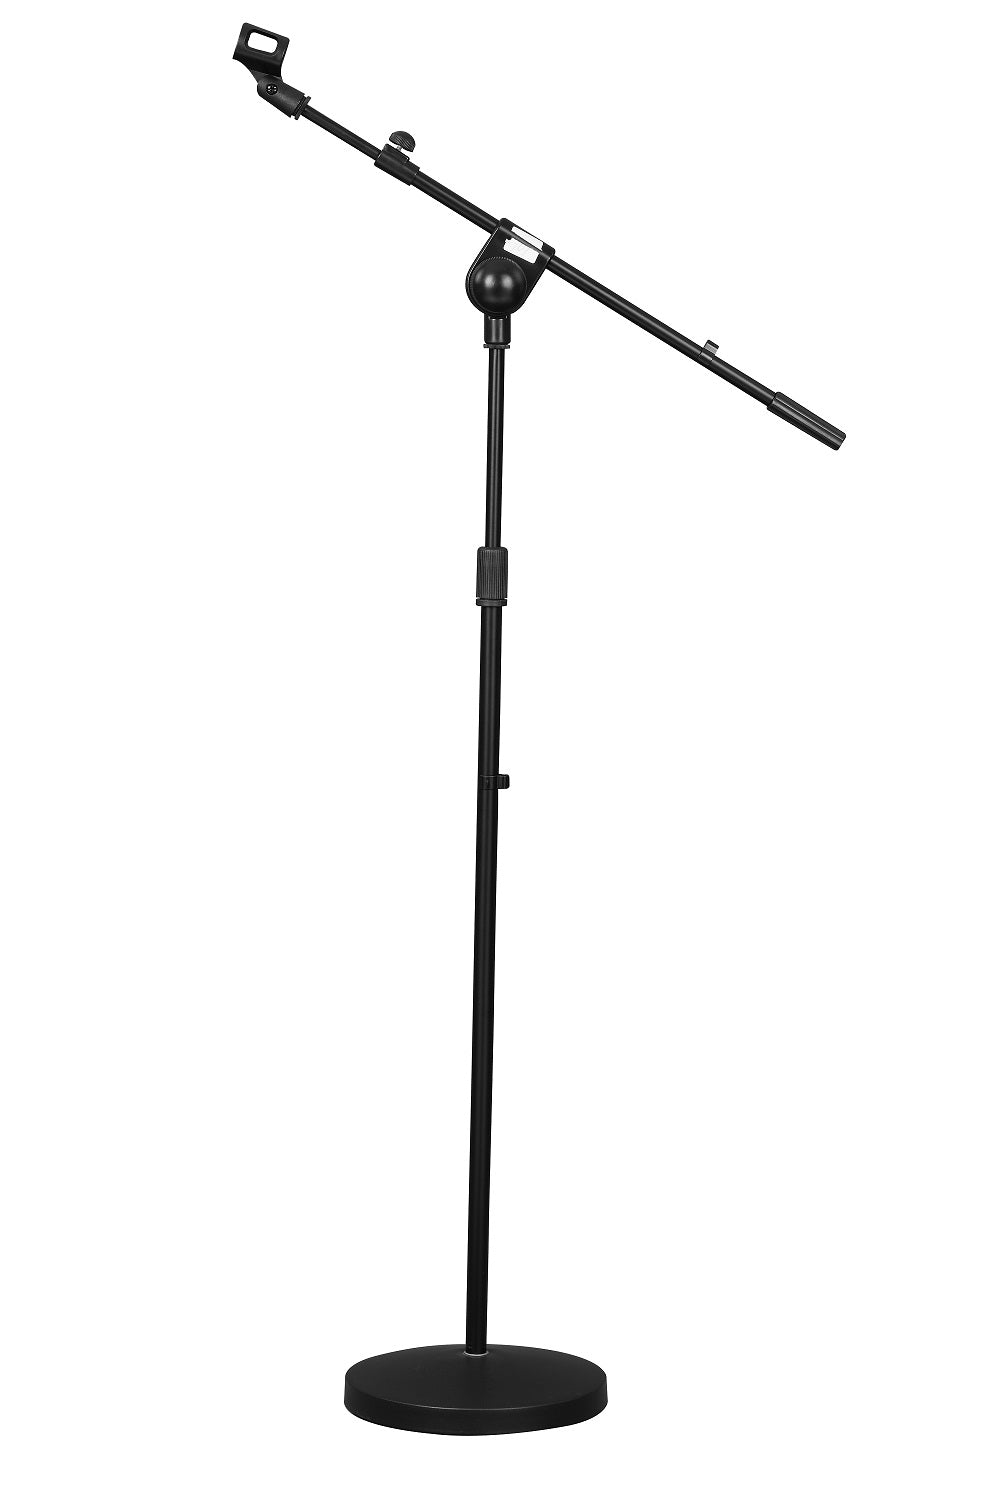 96-3302 Adjustable Round Base Microphone Stand